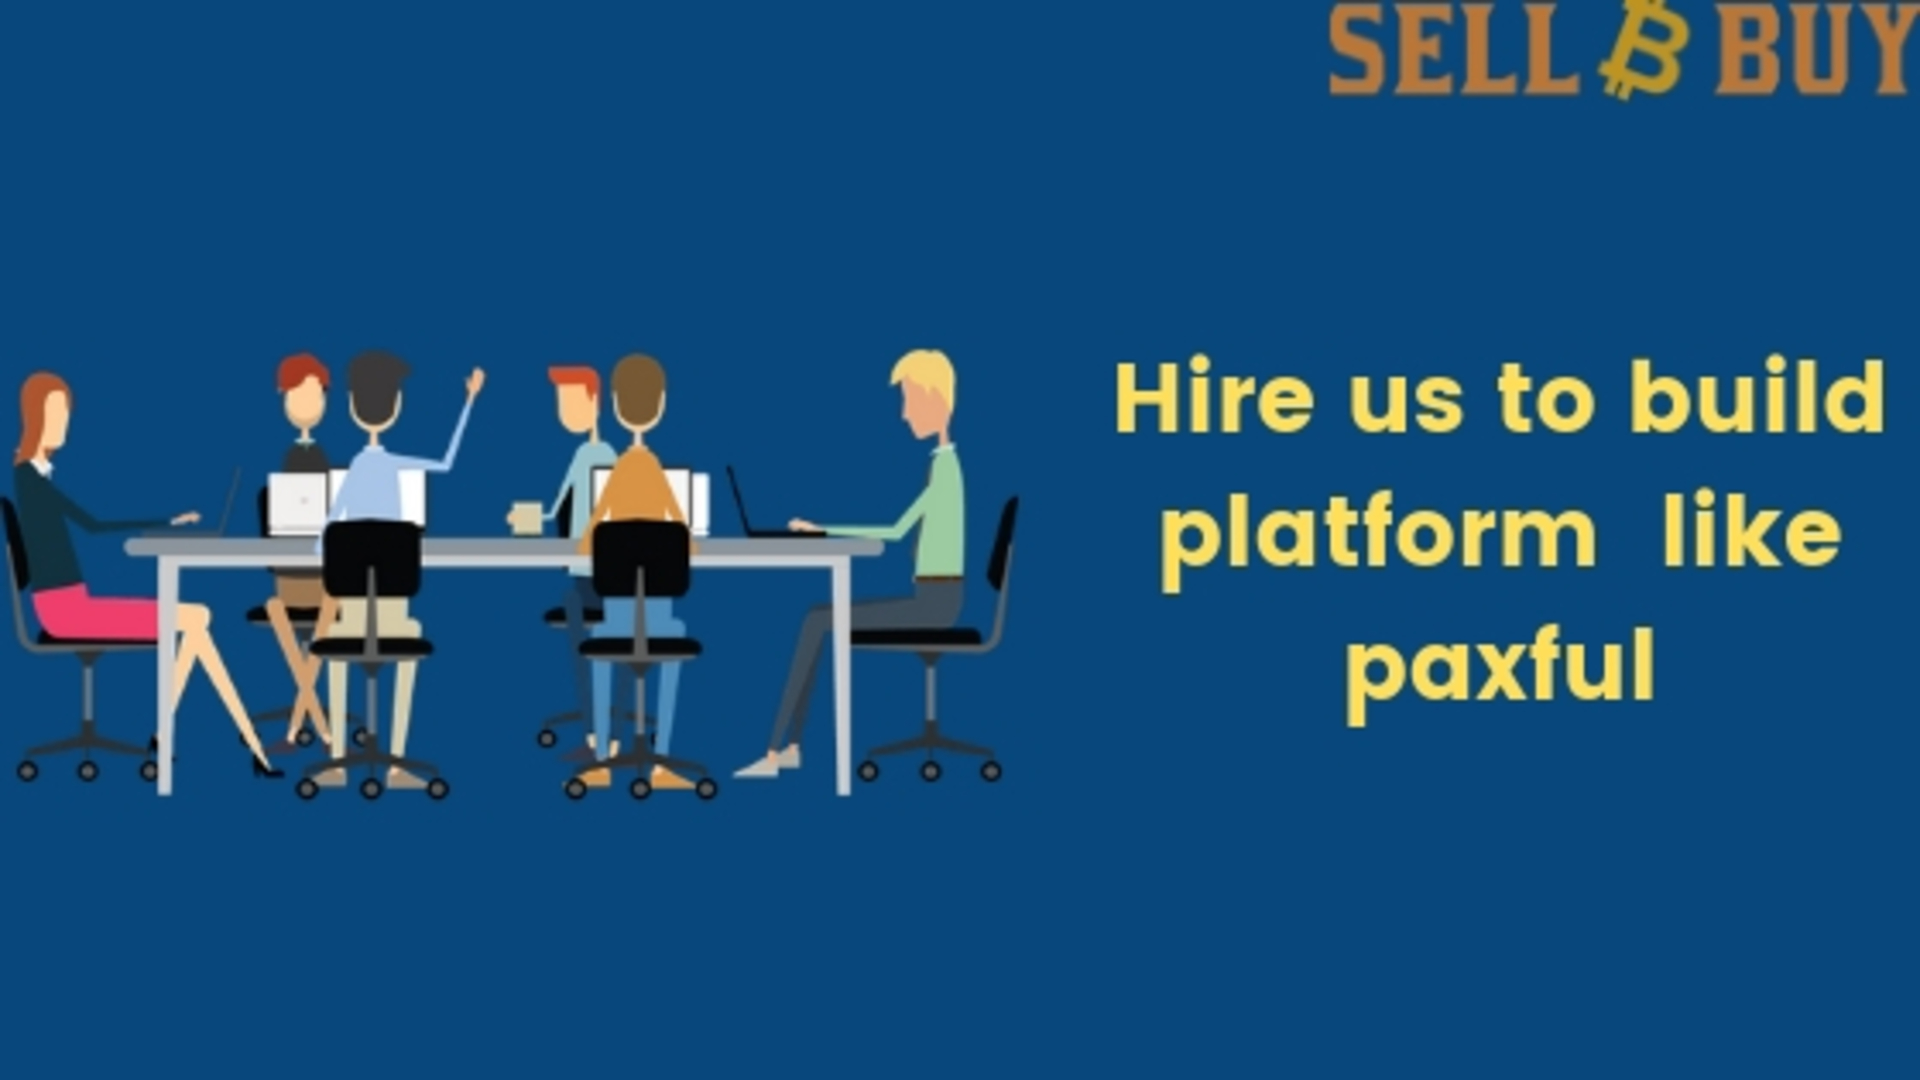 Hire us to build exchange clone like paxful image